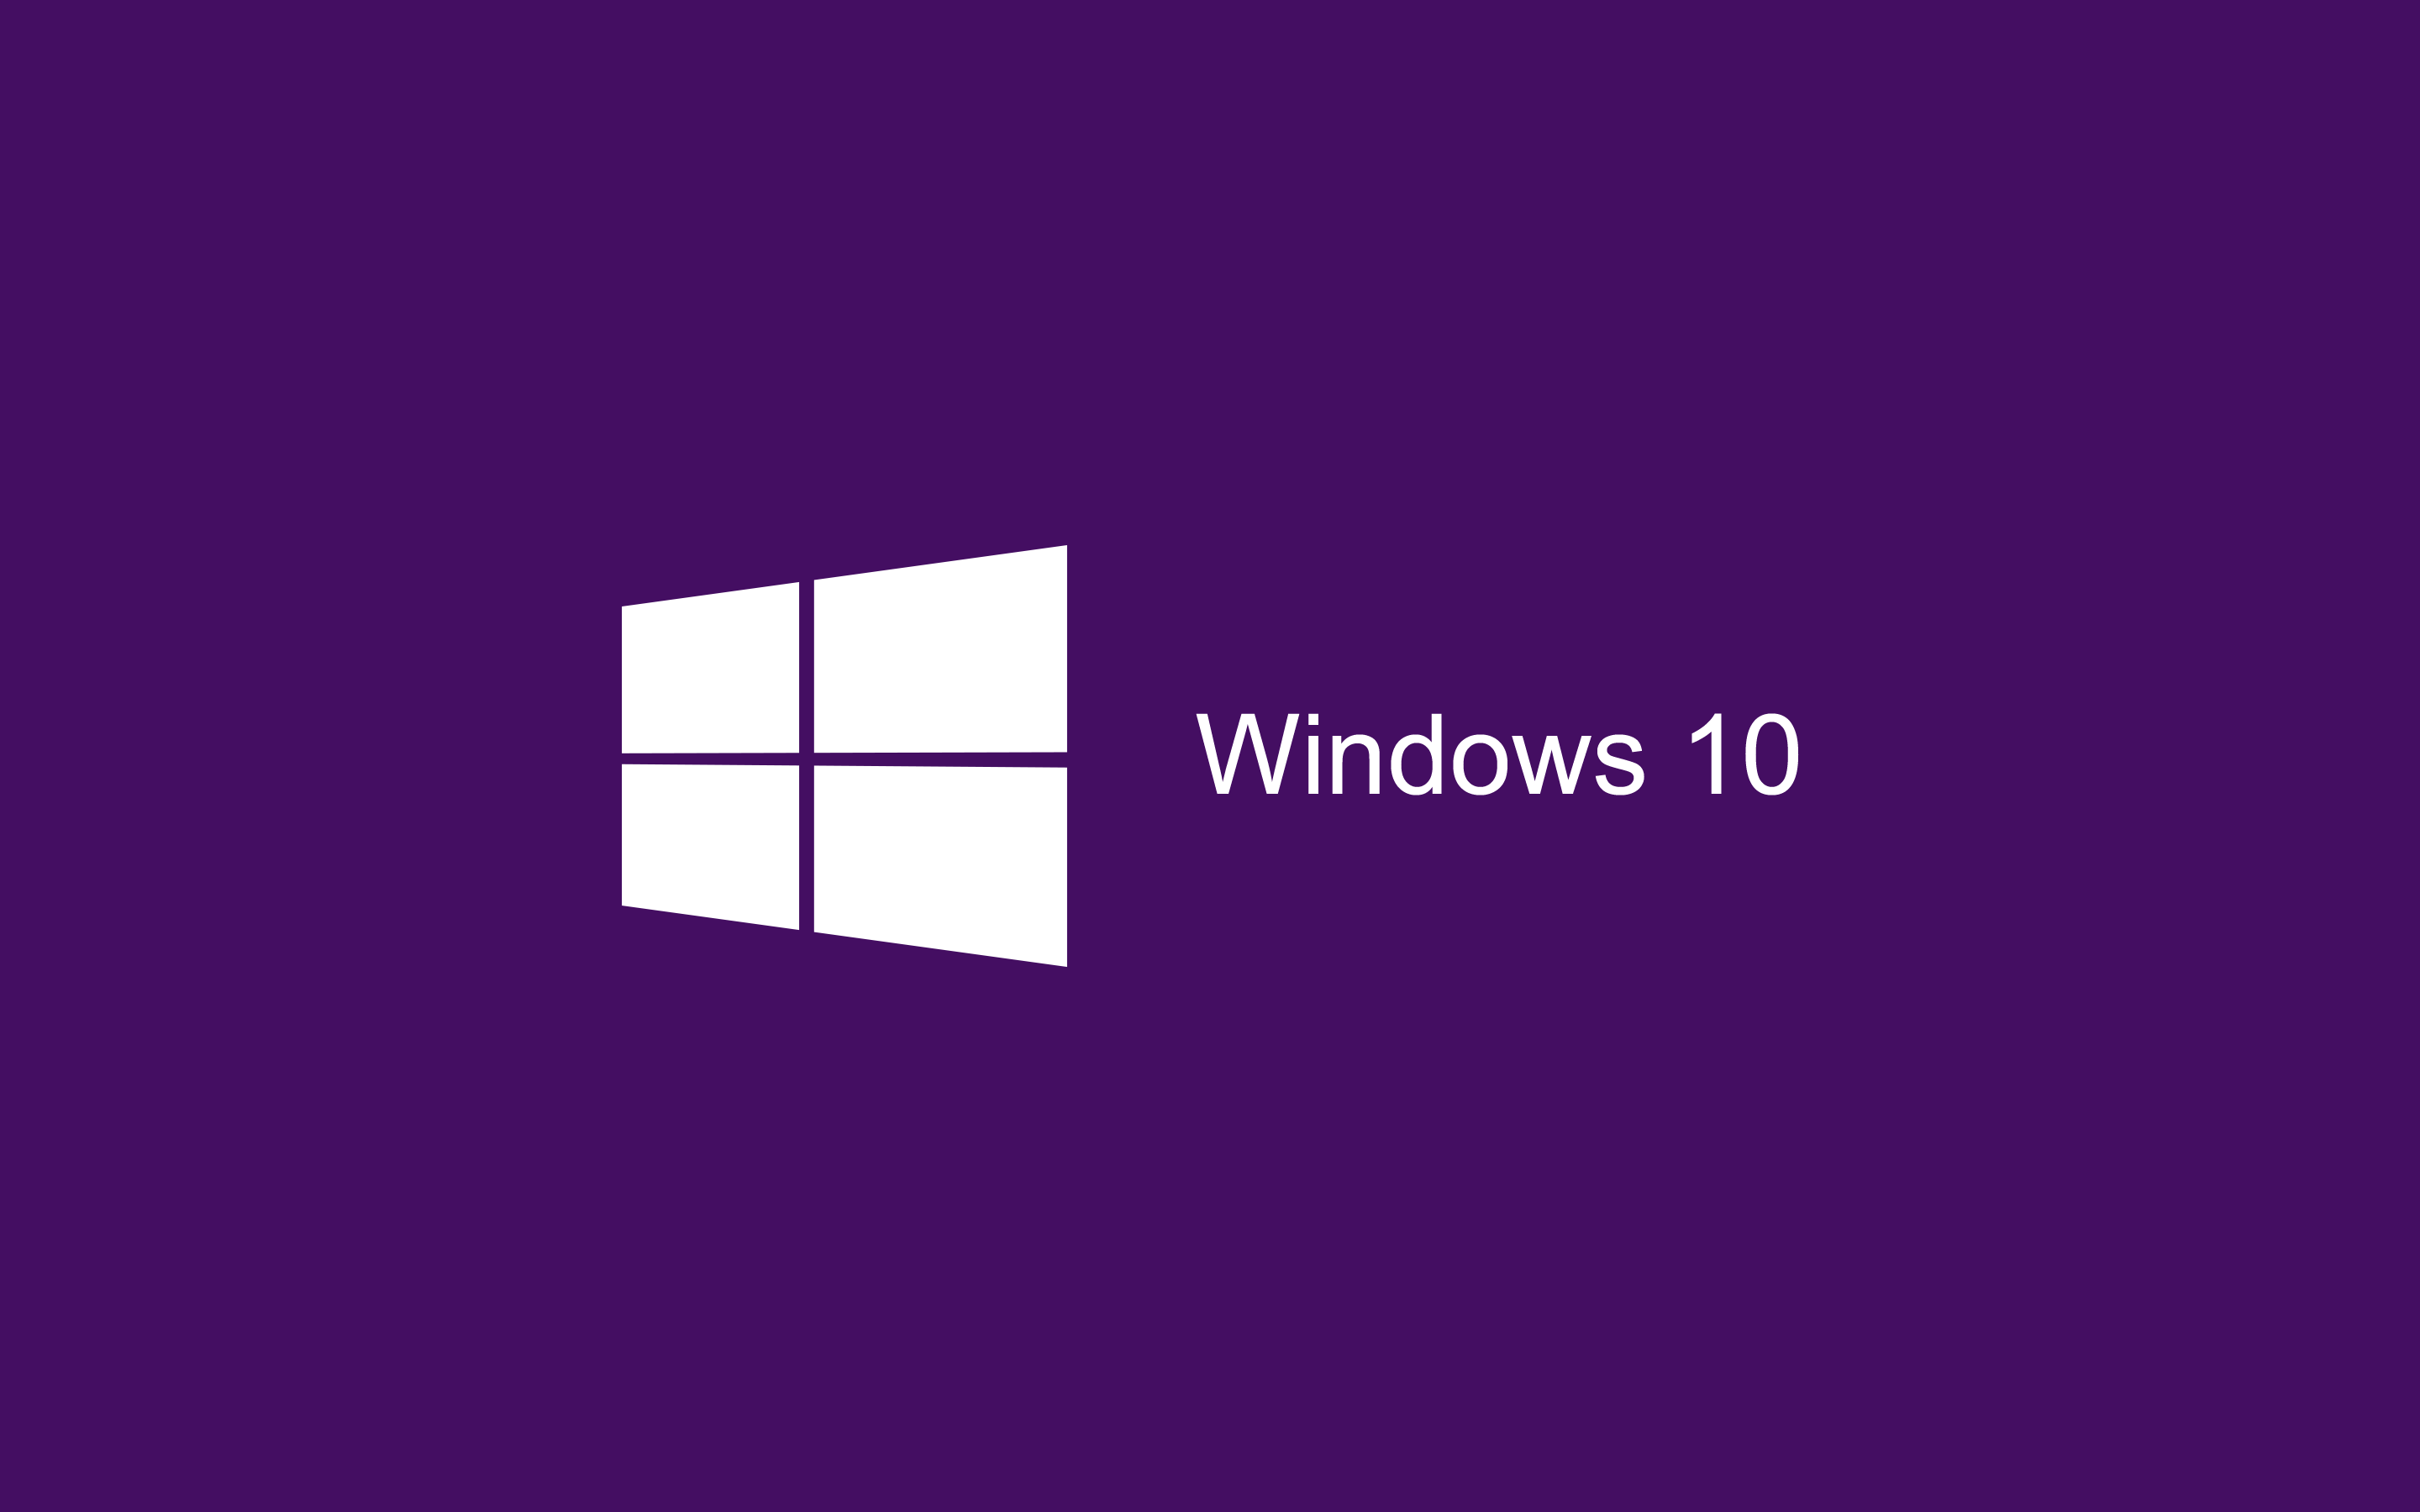 Windows 10 HD Wallpaper Sky HD Wallpaper 2880x1800